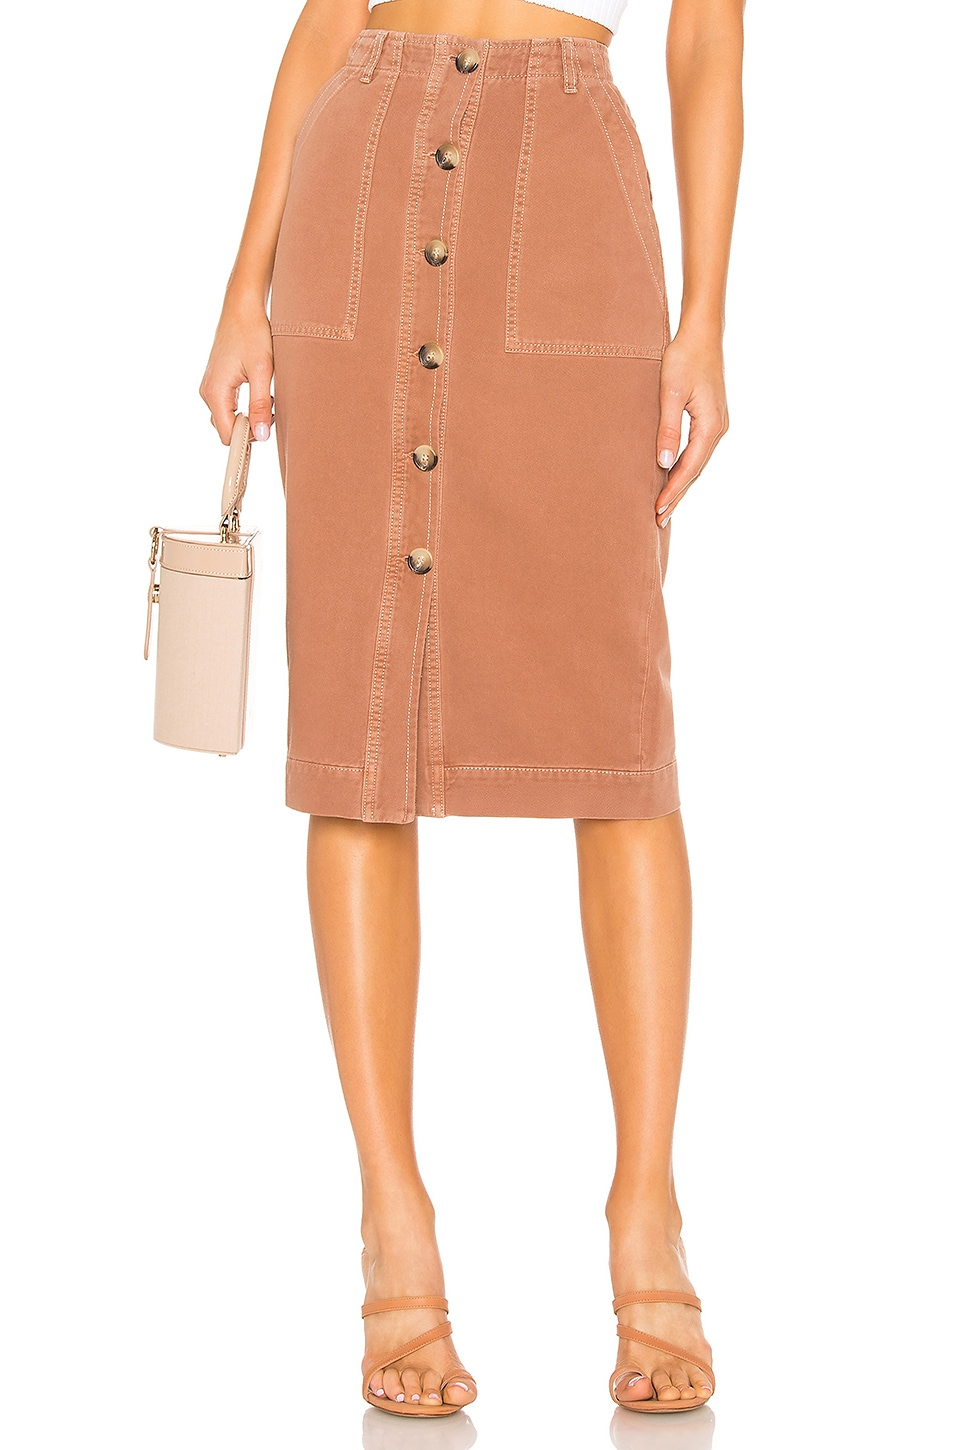 Free People Mid Length Utility Skirt in Brown